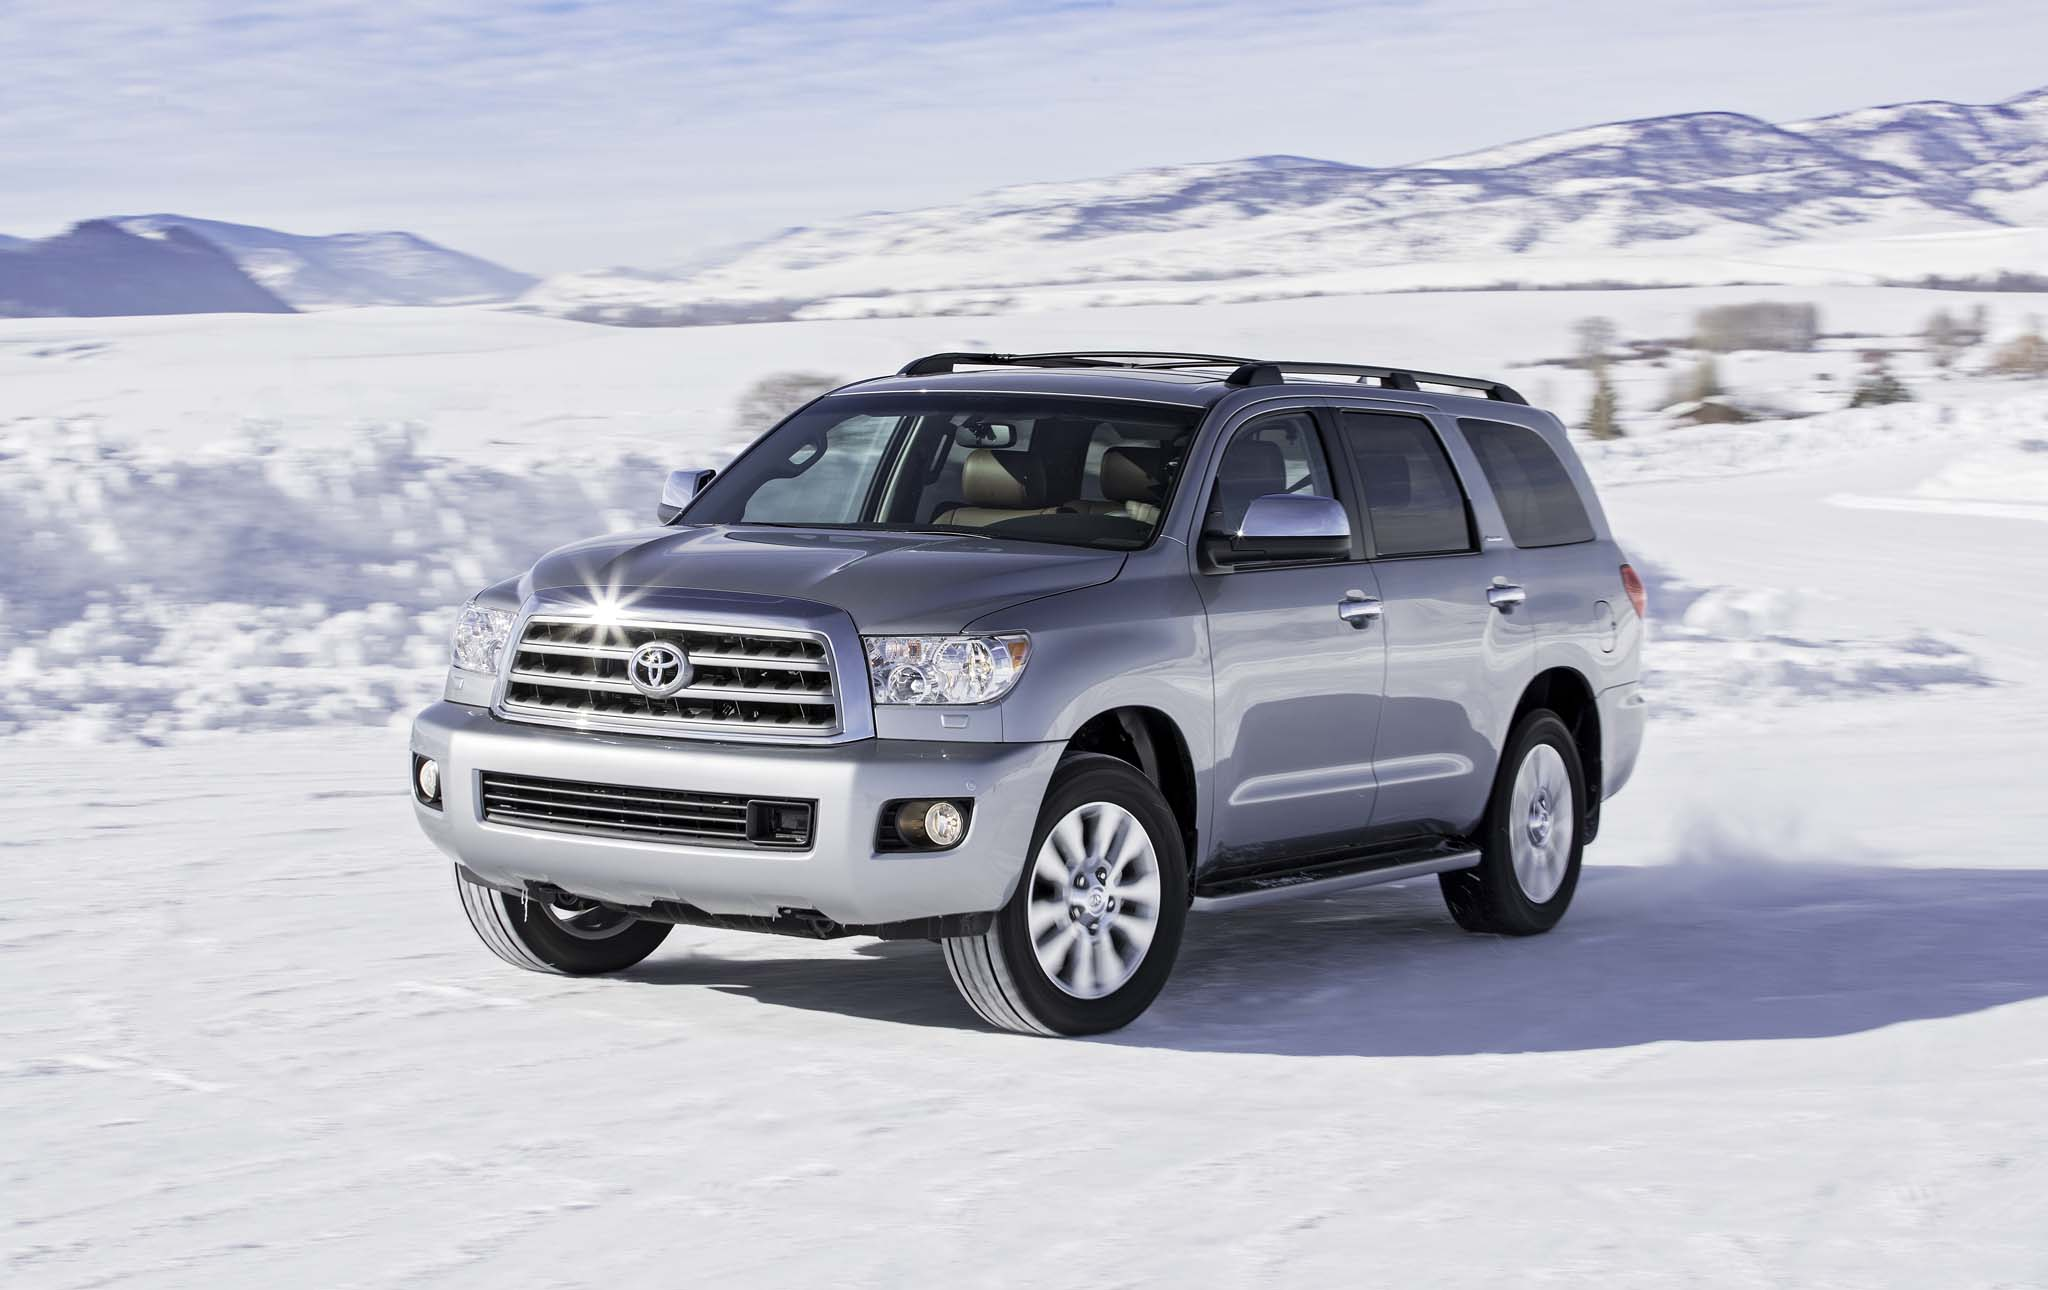 2017 Toyota Sequoia 4×4 Platinum Test Drive (Photo 22 of 26)